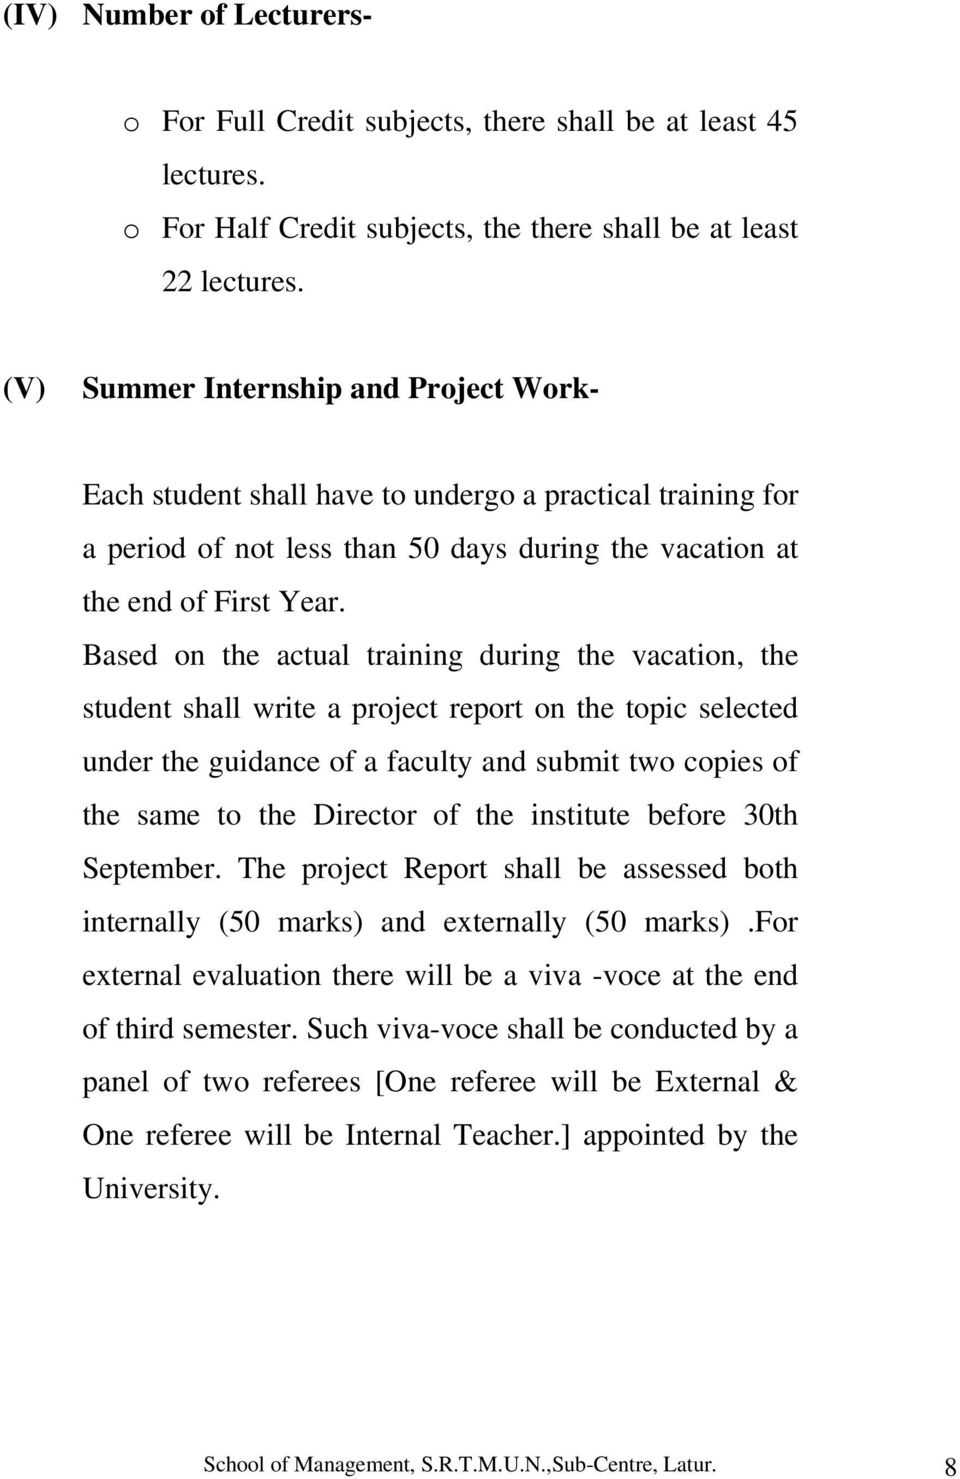 Based on the actual training during the vacation, the student shall write a project report on the topic selected under the guidance of a faculty and submit two copies of the same to the Director of